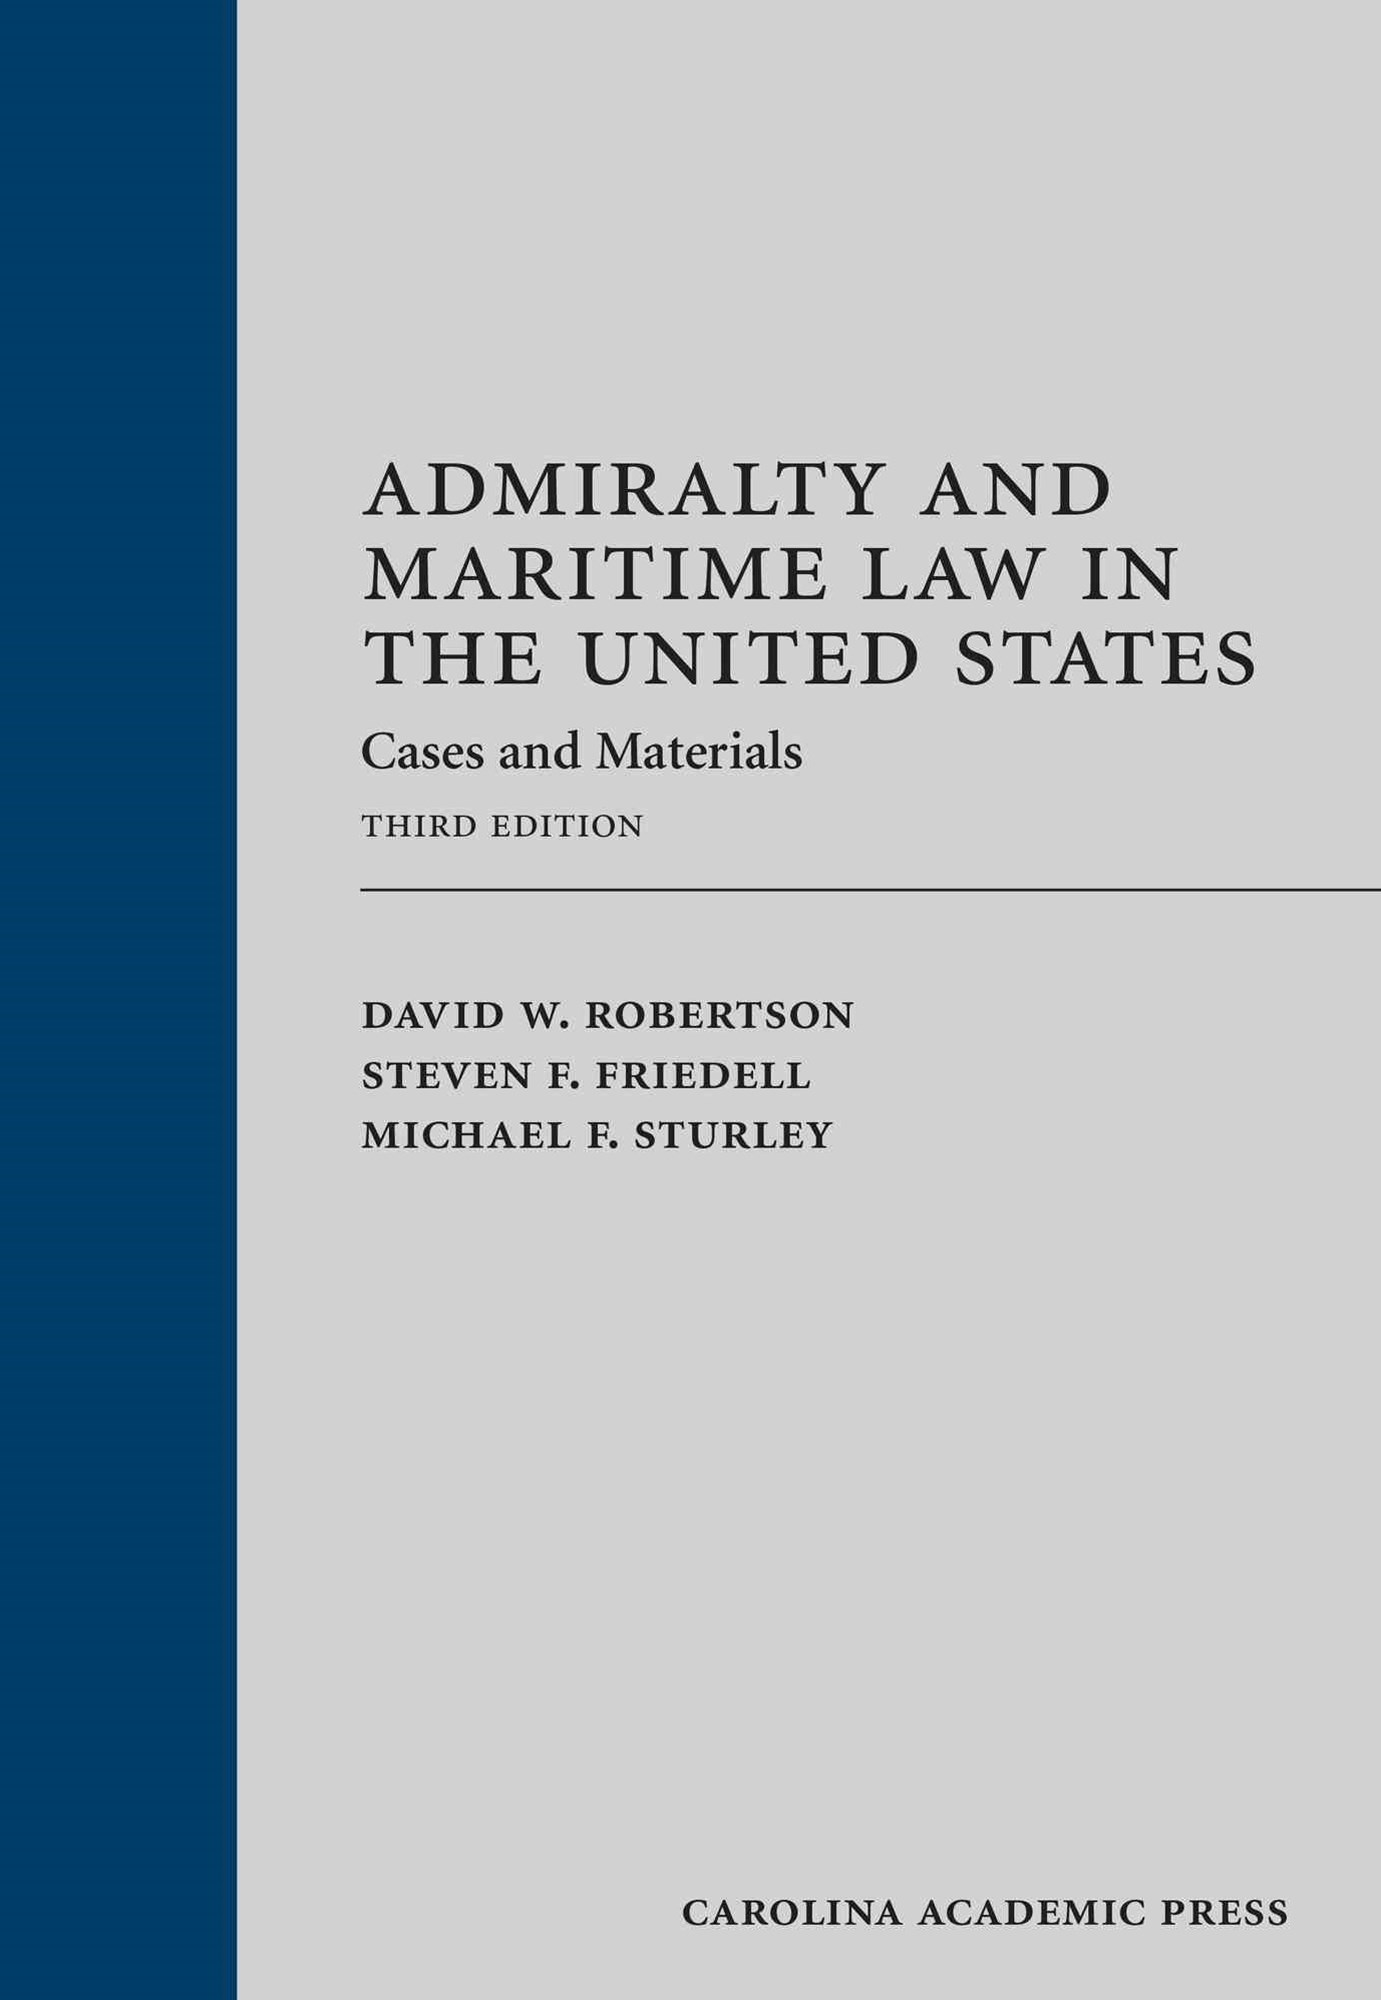 Admiralty and Maritime Law in the United States